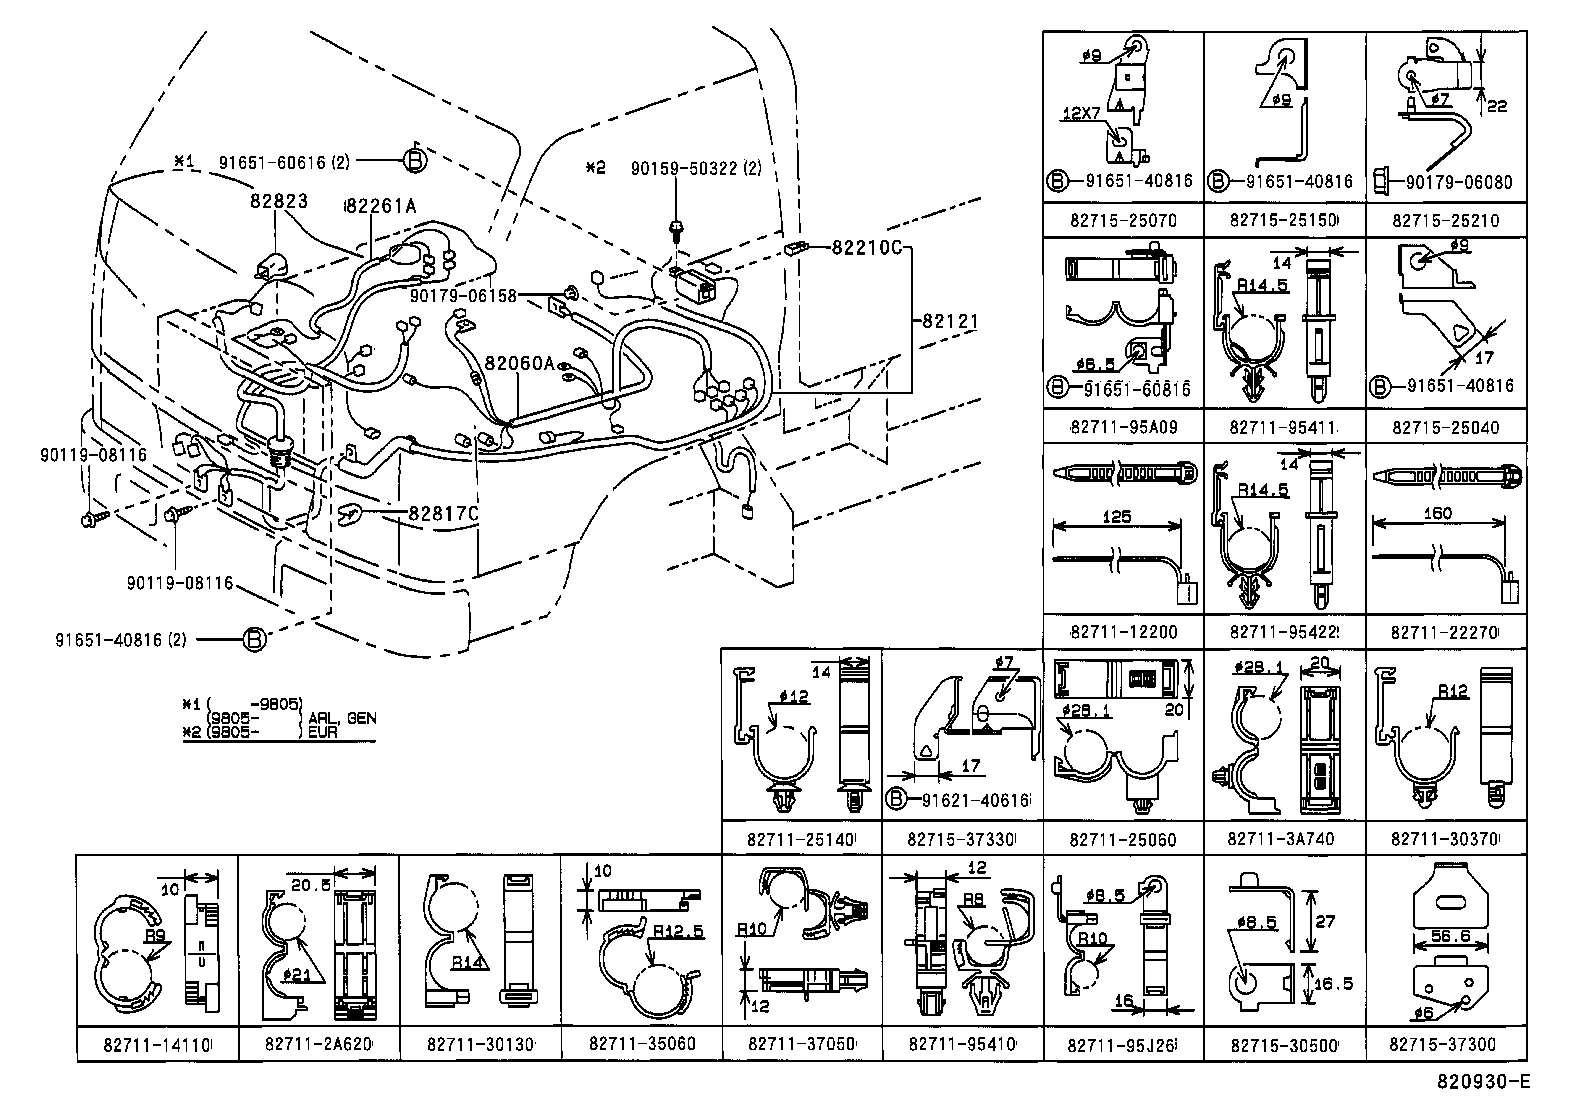 2001 harley fxd wiring diagram html